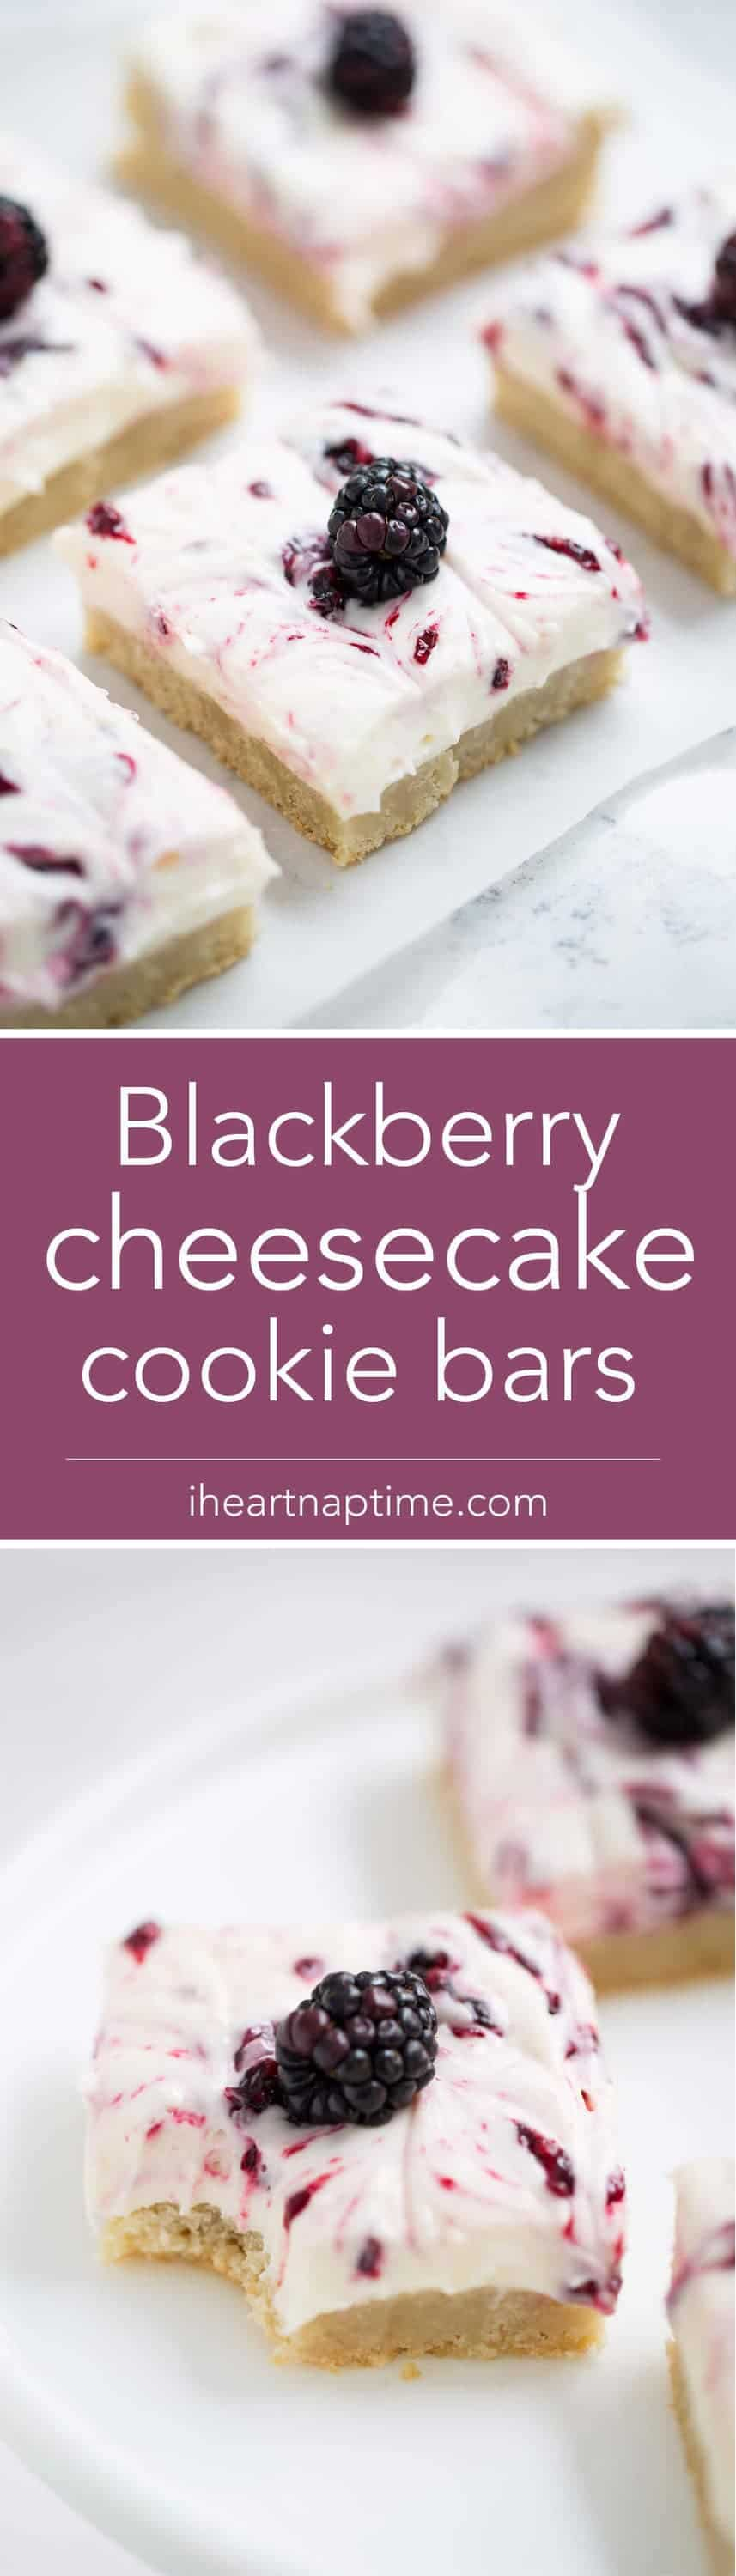 Blackberry Cheesecake Bars - made with a sugar cookie crust, cream cheese filling, and blackberry topping. An incredibly easy dessert to make and seriously divine. These are the absolute perfect treat for Spring!